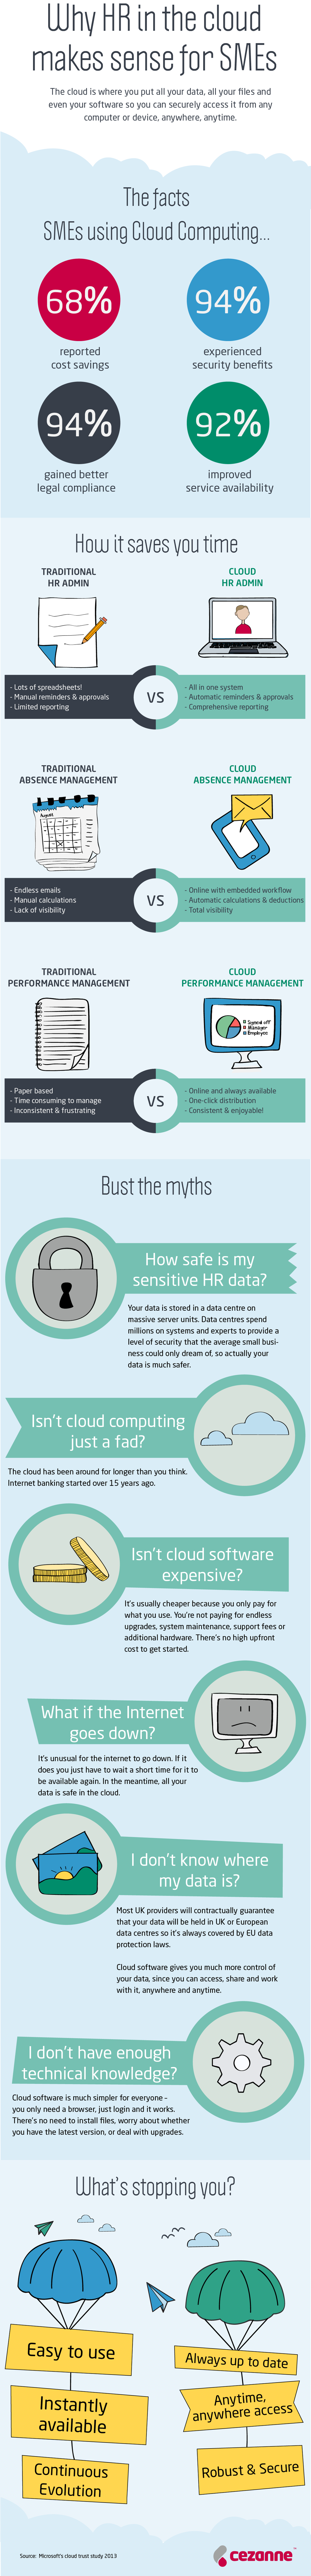 HR and Cloud Computing-Infographic